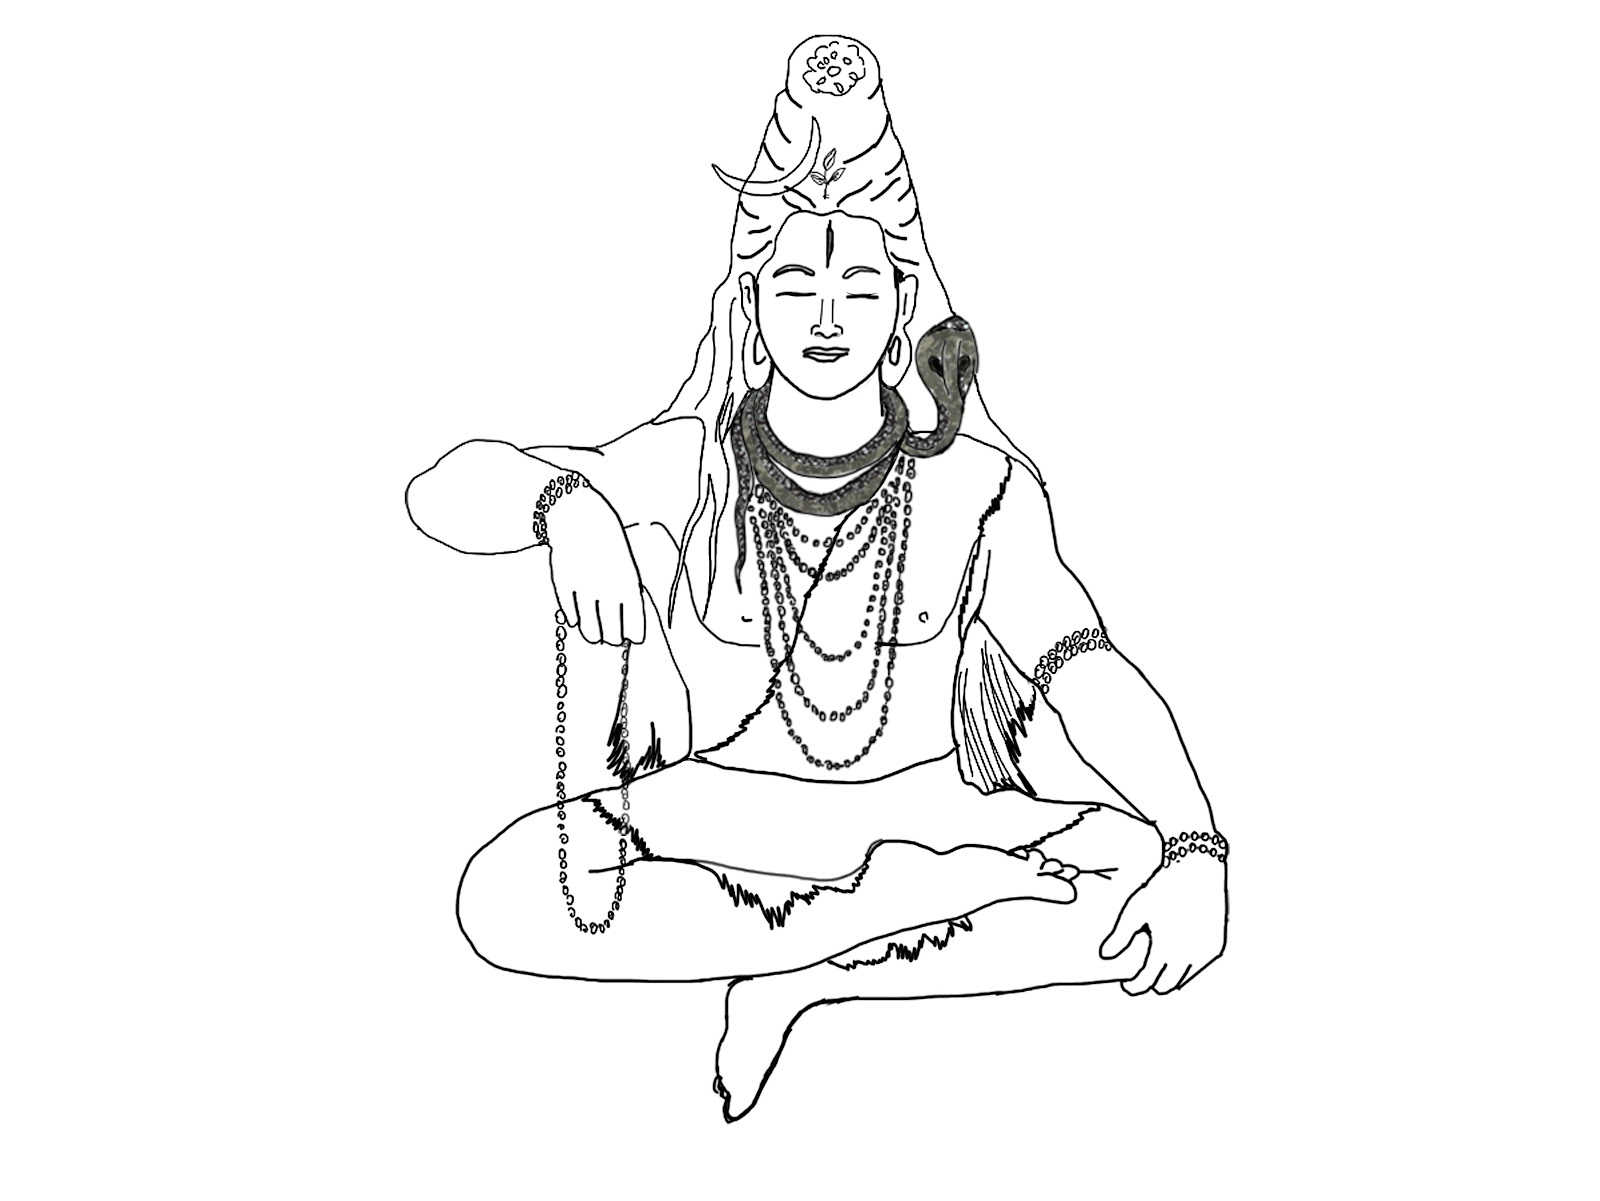 easy drawing of lord shiva learn how to draw lord shiva standing hinduism step by drawing shiva of easy lord